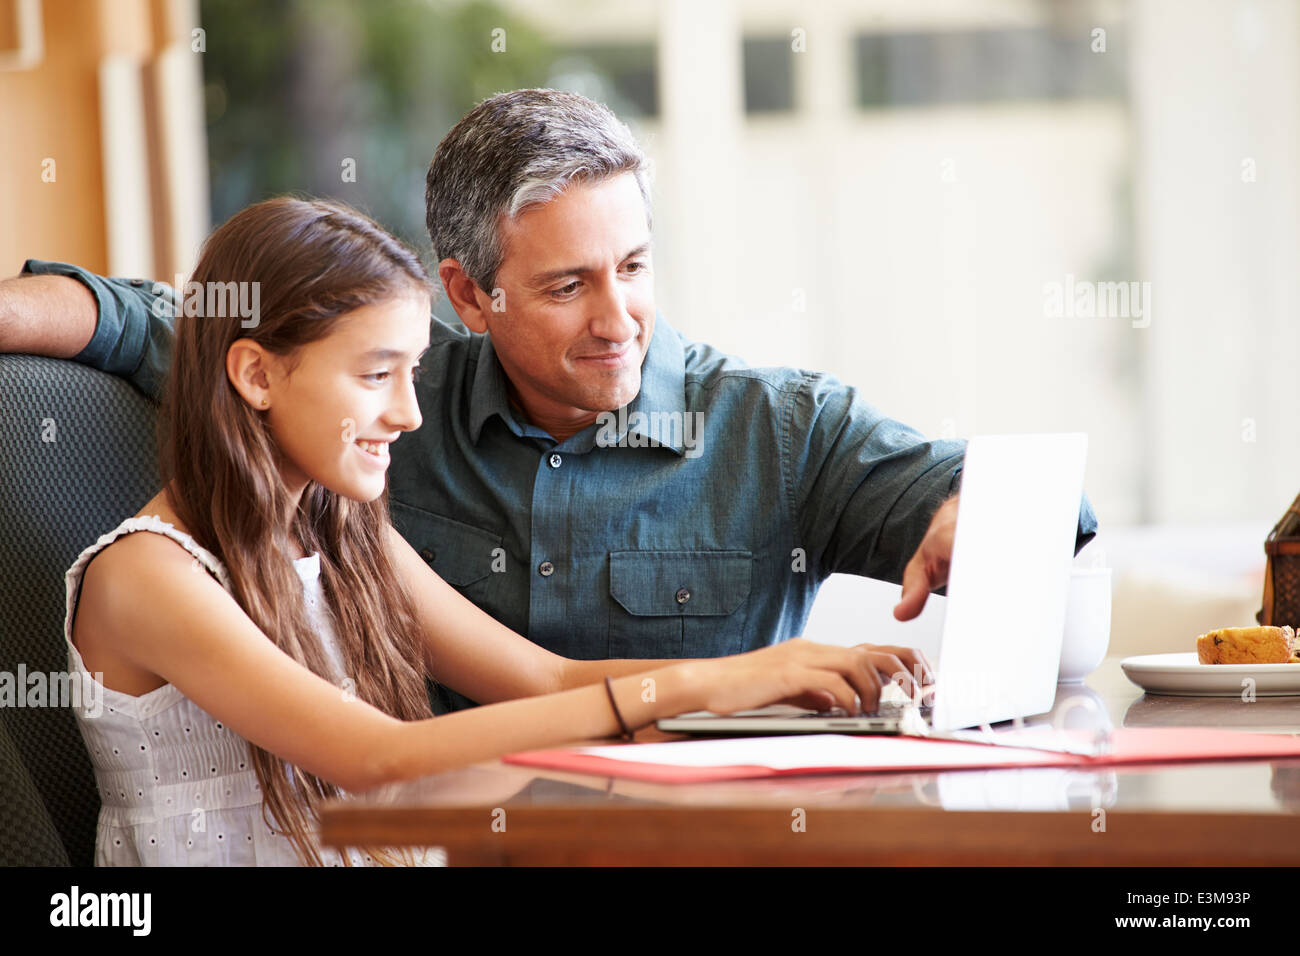 Father And Teenage Daughter Looking At Laptop Together Stock Photo